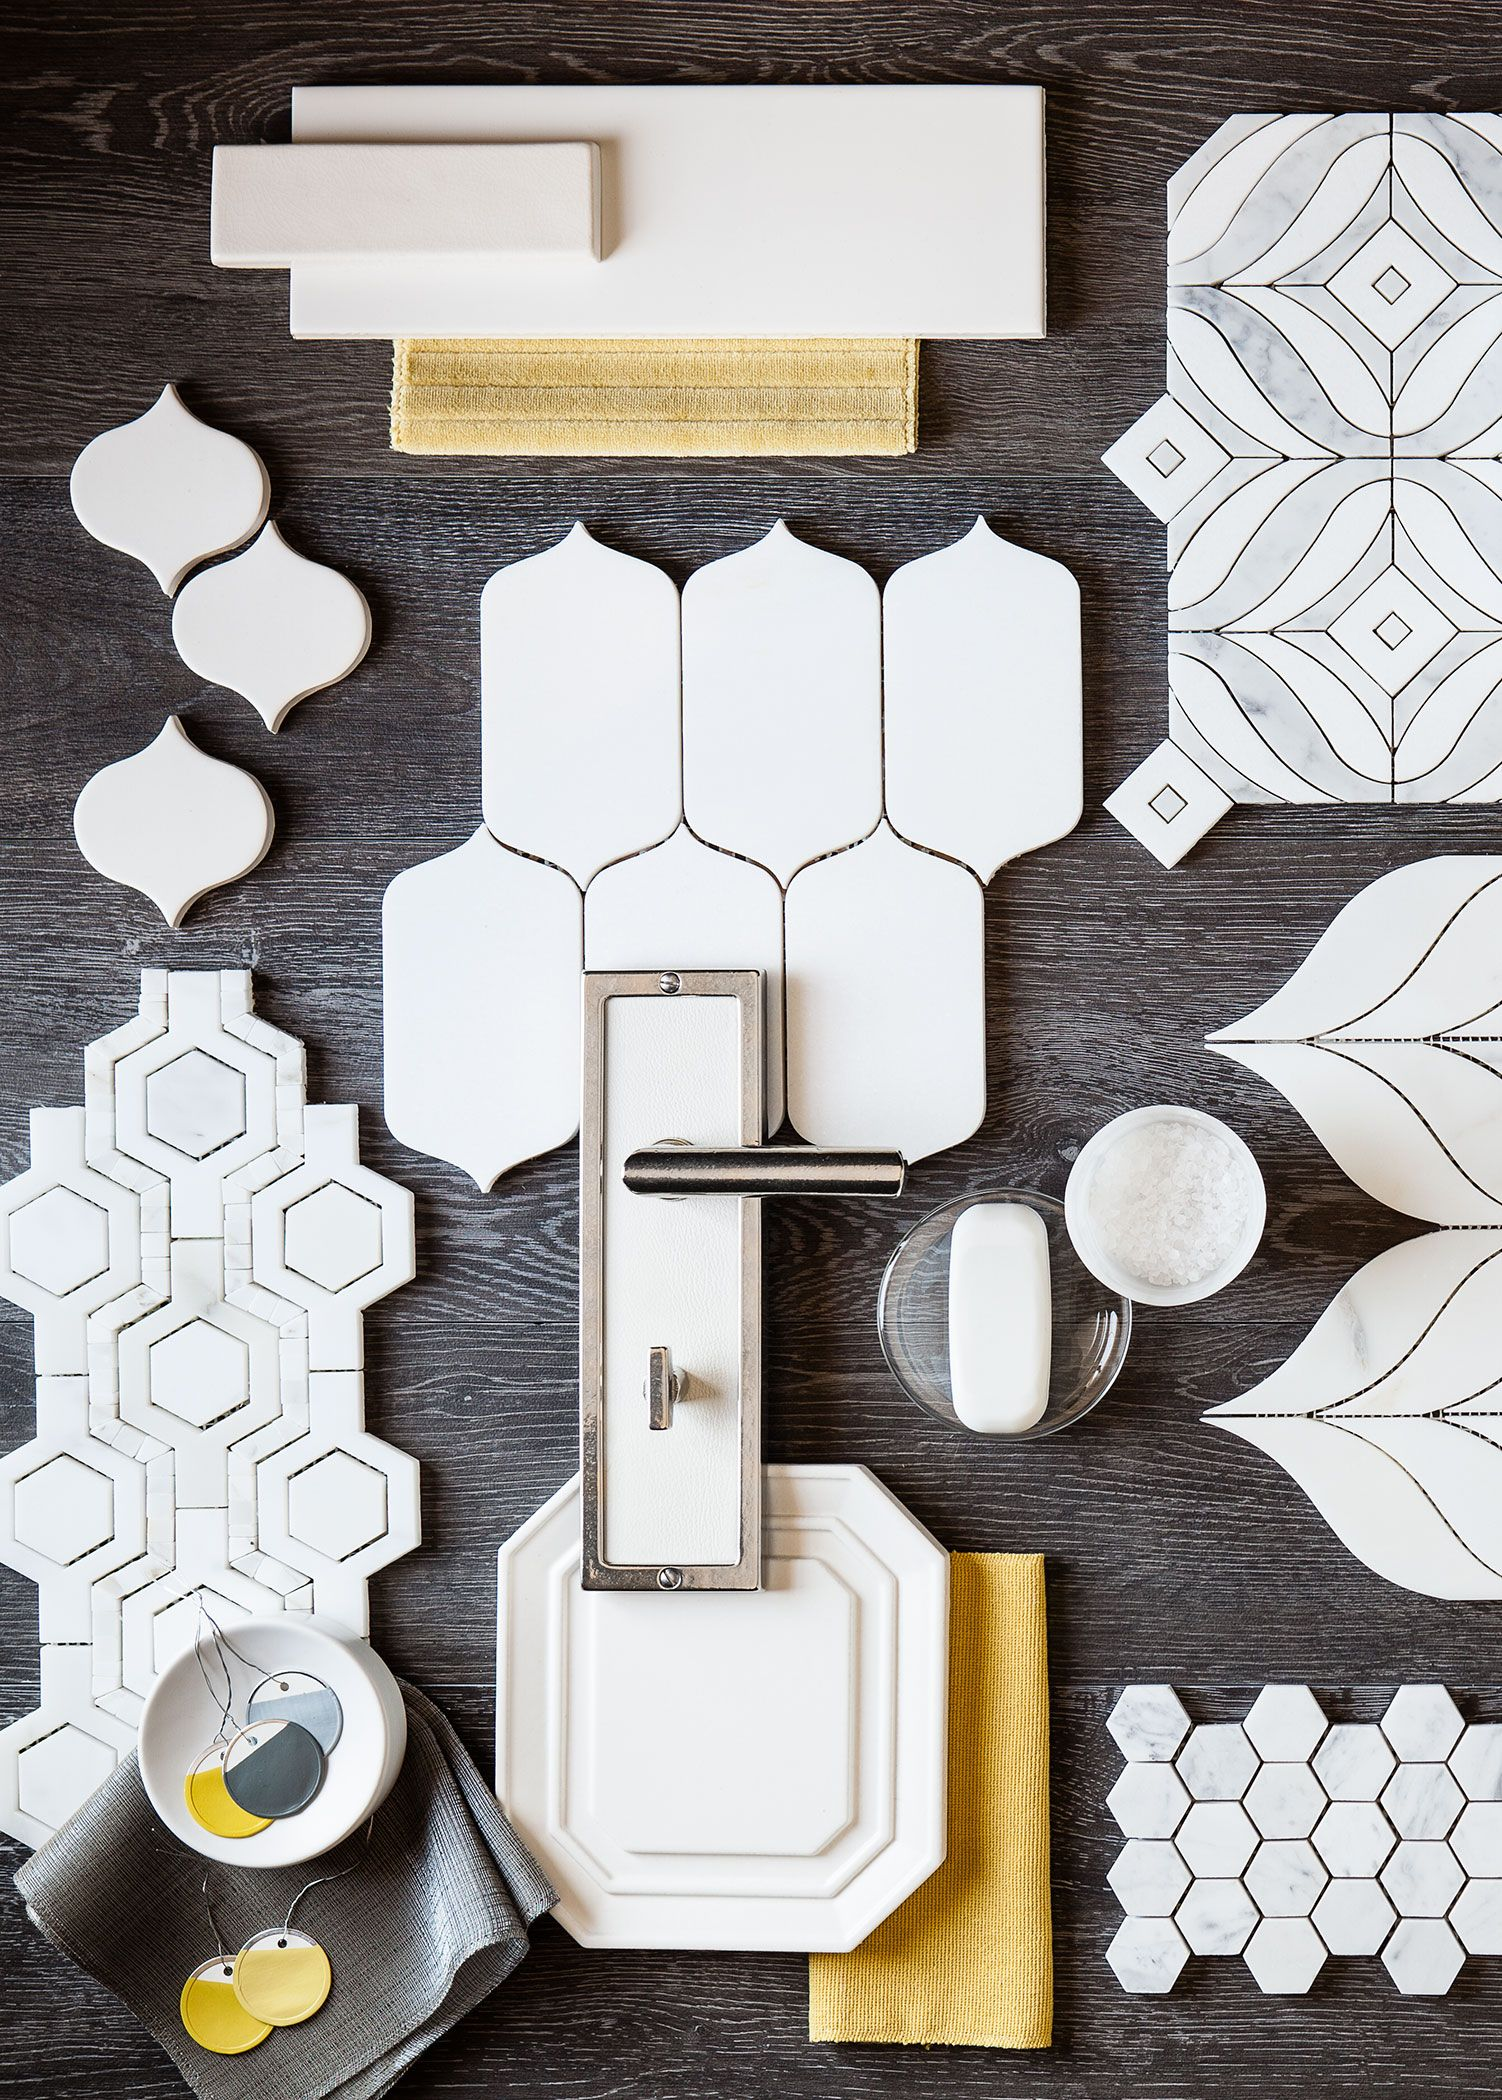 White And Grey With A Touch Of Yellow Make Sny Modern Statement Walker Zanger Tile